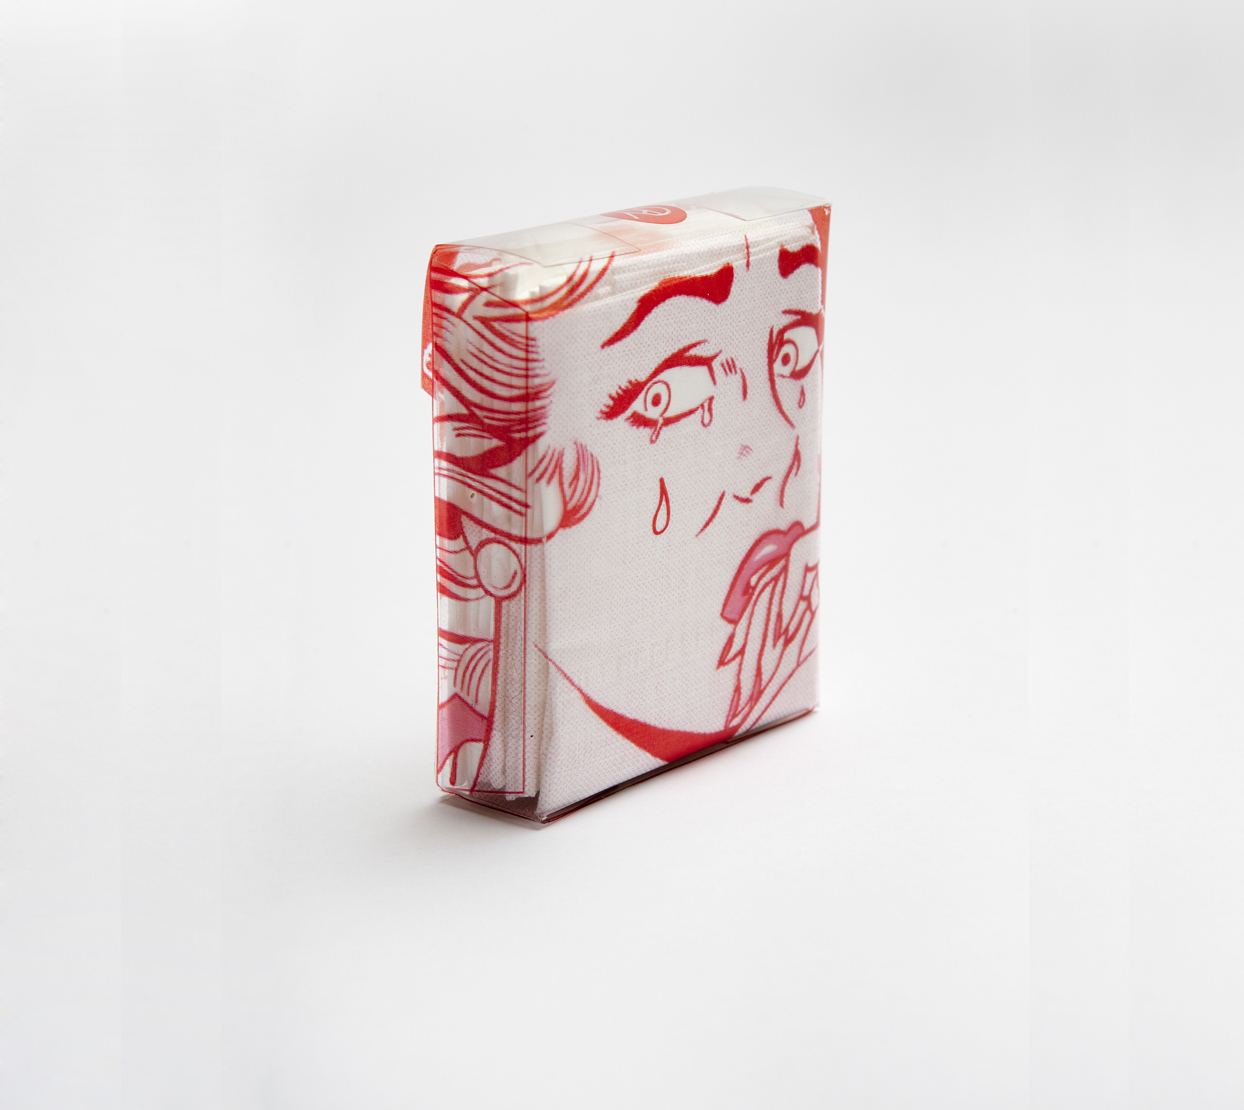 TISSUES BOX - packaging